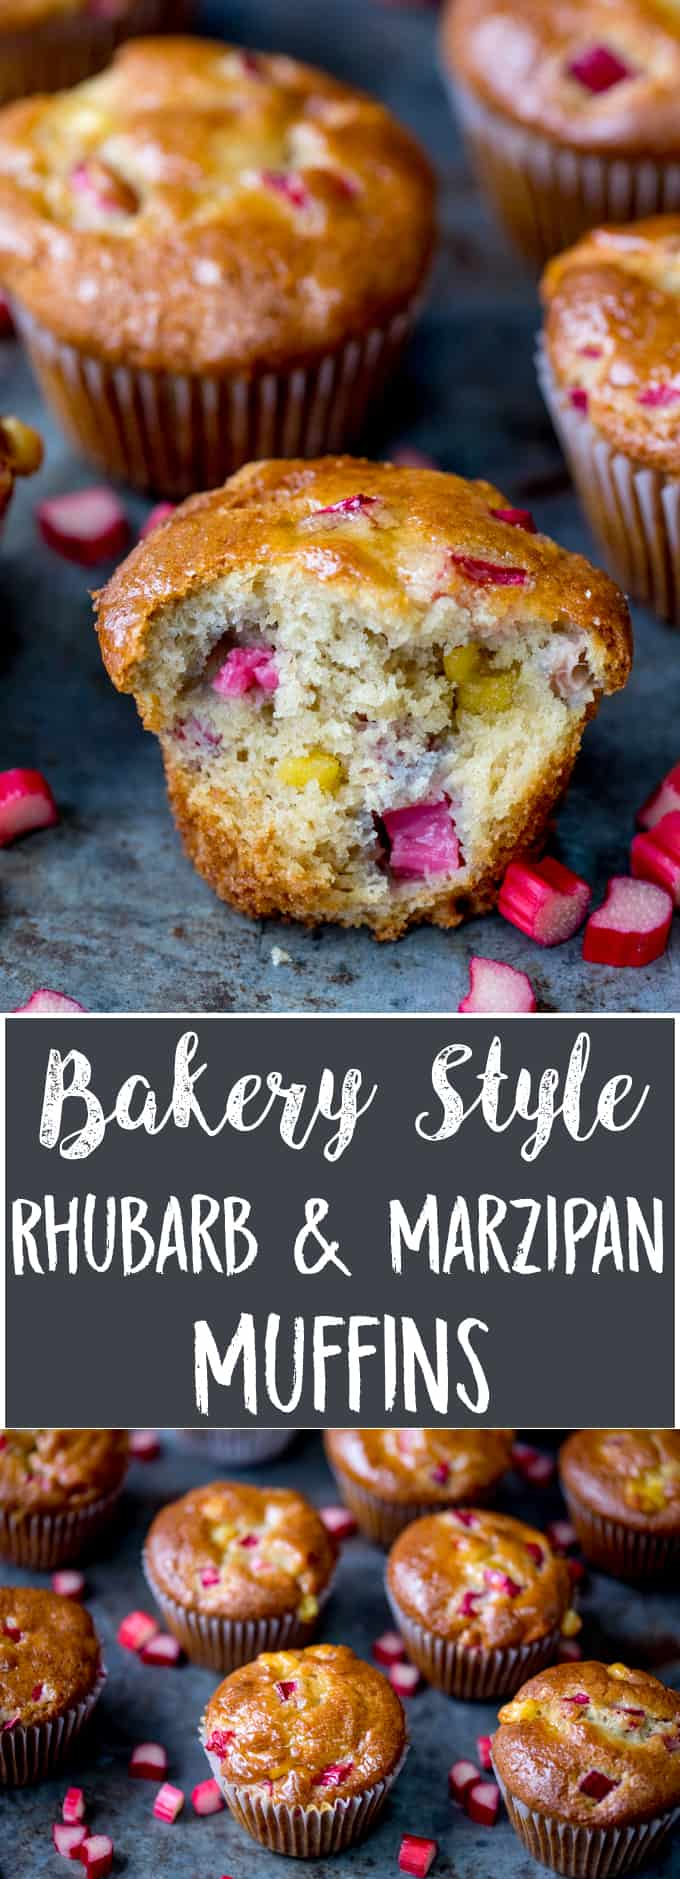 These fluffy, bakery-style rhubarb and marzipan muffins use flavours that are a little bit different, but they work so well!! Sweet, tangy and very moreish. And check out my secret ingredient to inject more rhubarb flavour whilst helping to get that perfect rise! #bakerymuffins #tallmuffins #rhubarb #marzipan #rhubarbmuffins #snacktime